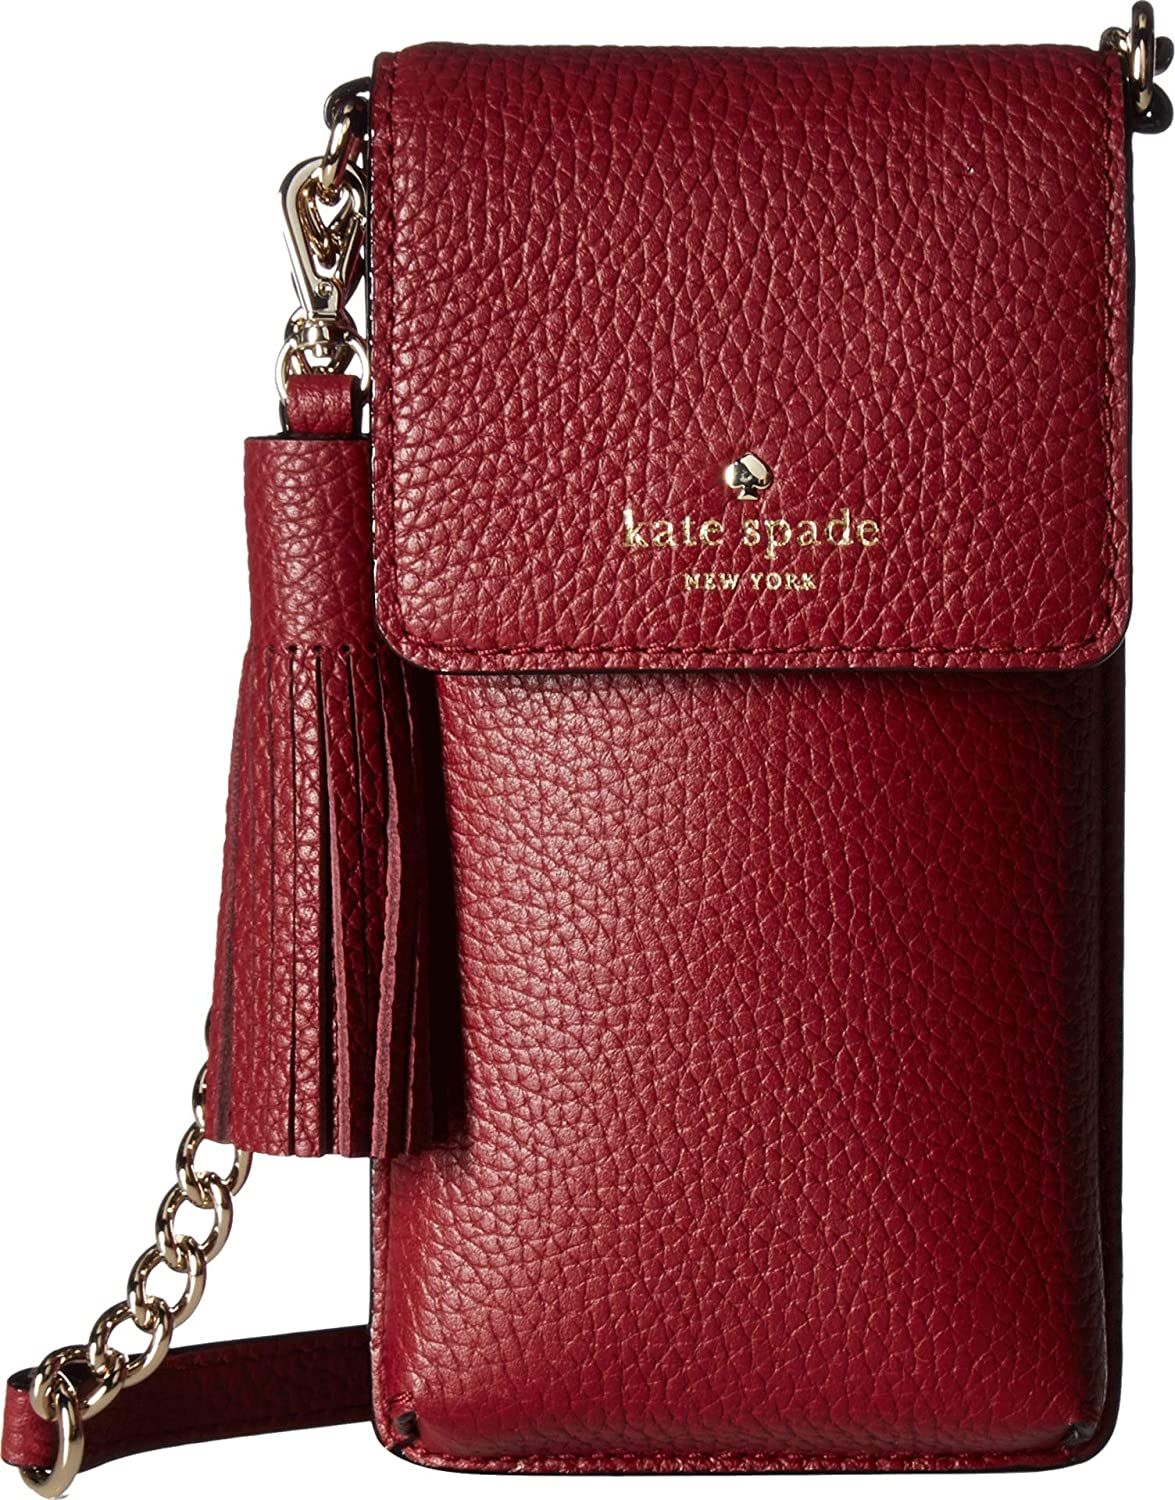 Kate Spade New York Women's North/South Crossbody Phone Case for iPhone¿ 6, 6s, 7, 8 Fig Jam One Size